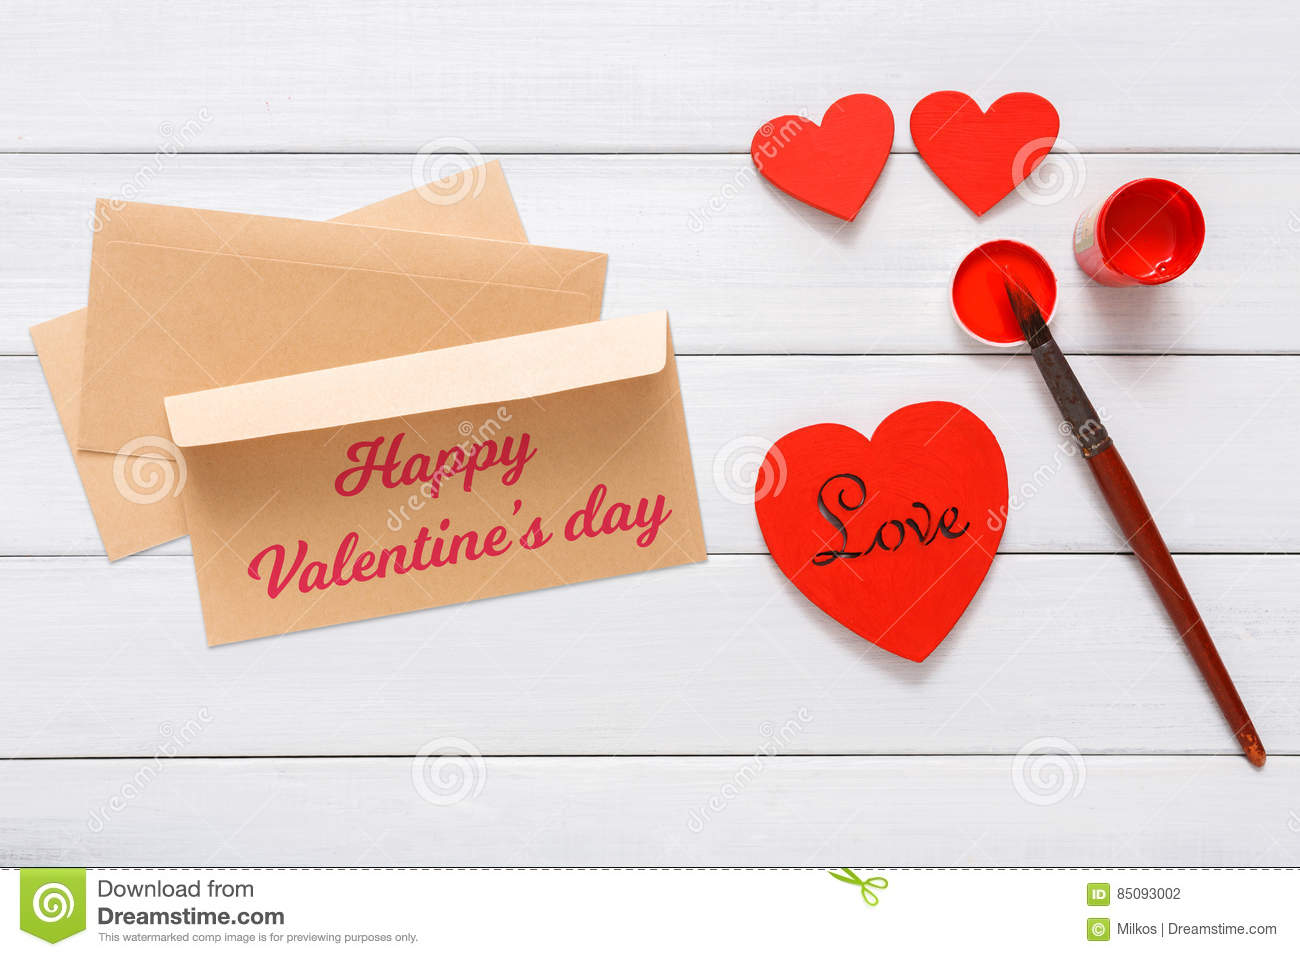 Valentine Day Diy Handmade Card Making Top View On Wood Stock Photo